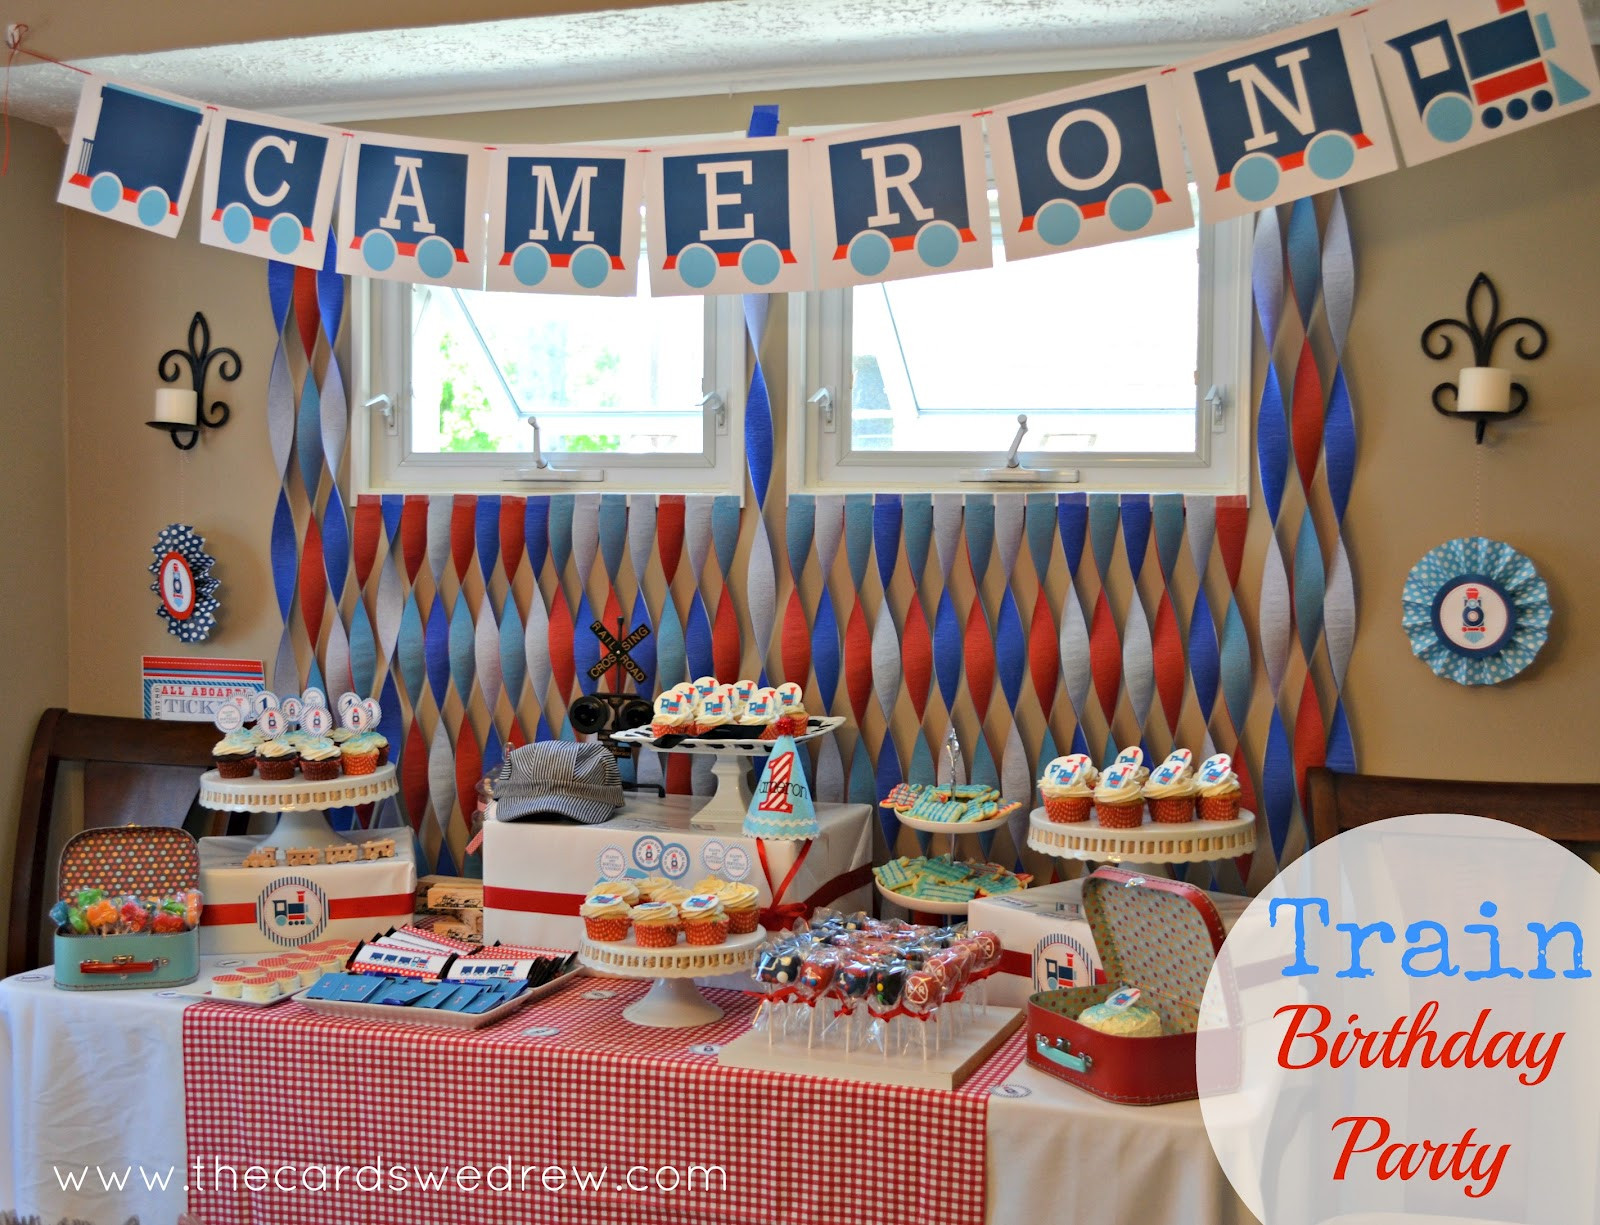 Best ideas about Train Birthday Decorations . Save or Pin Train Birthday Party The Cards We Drew Now.